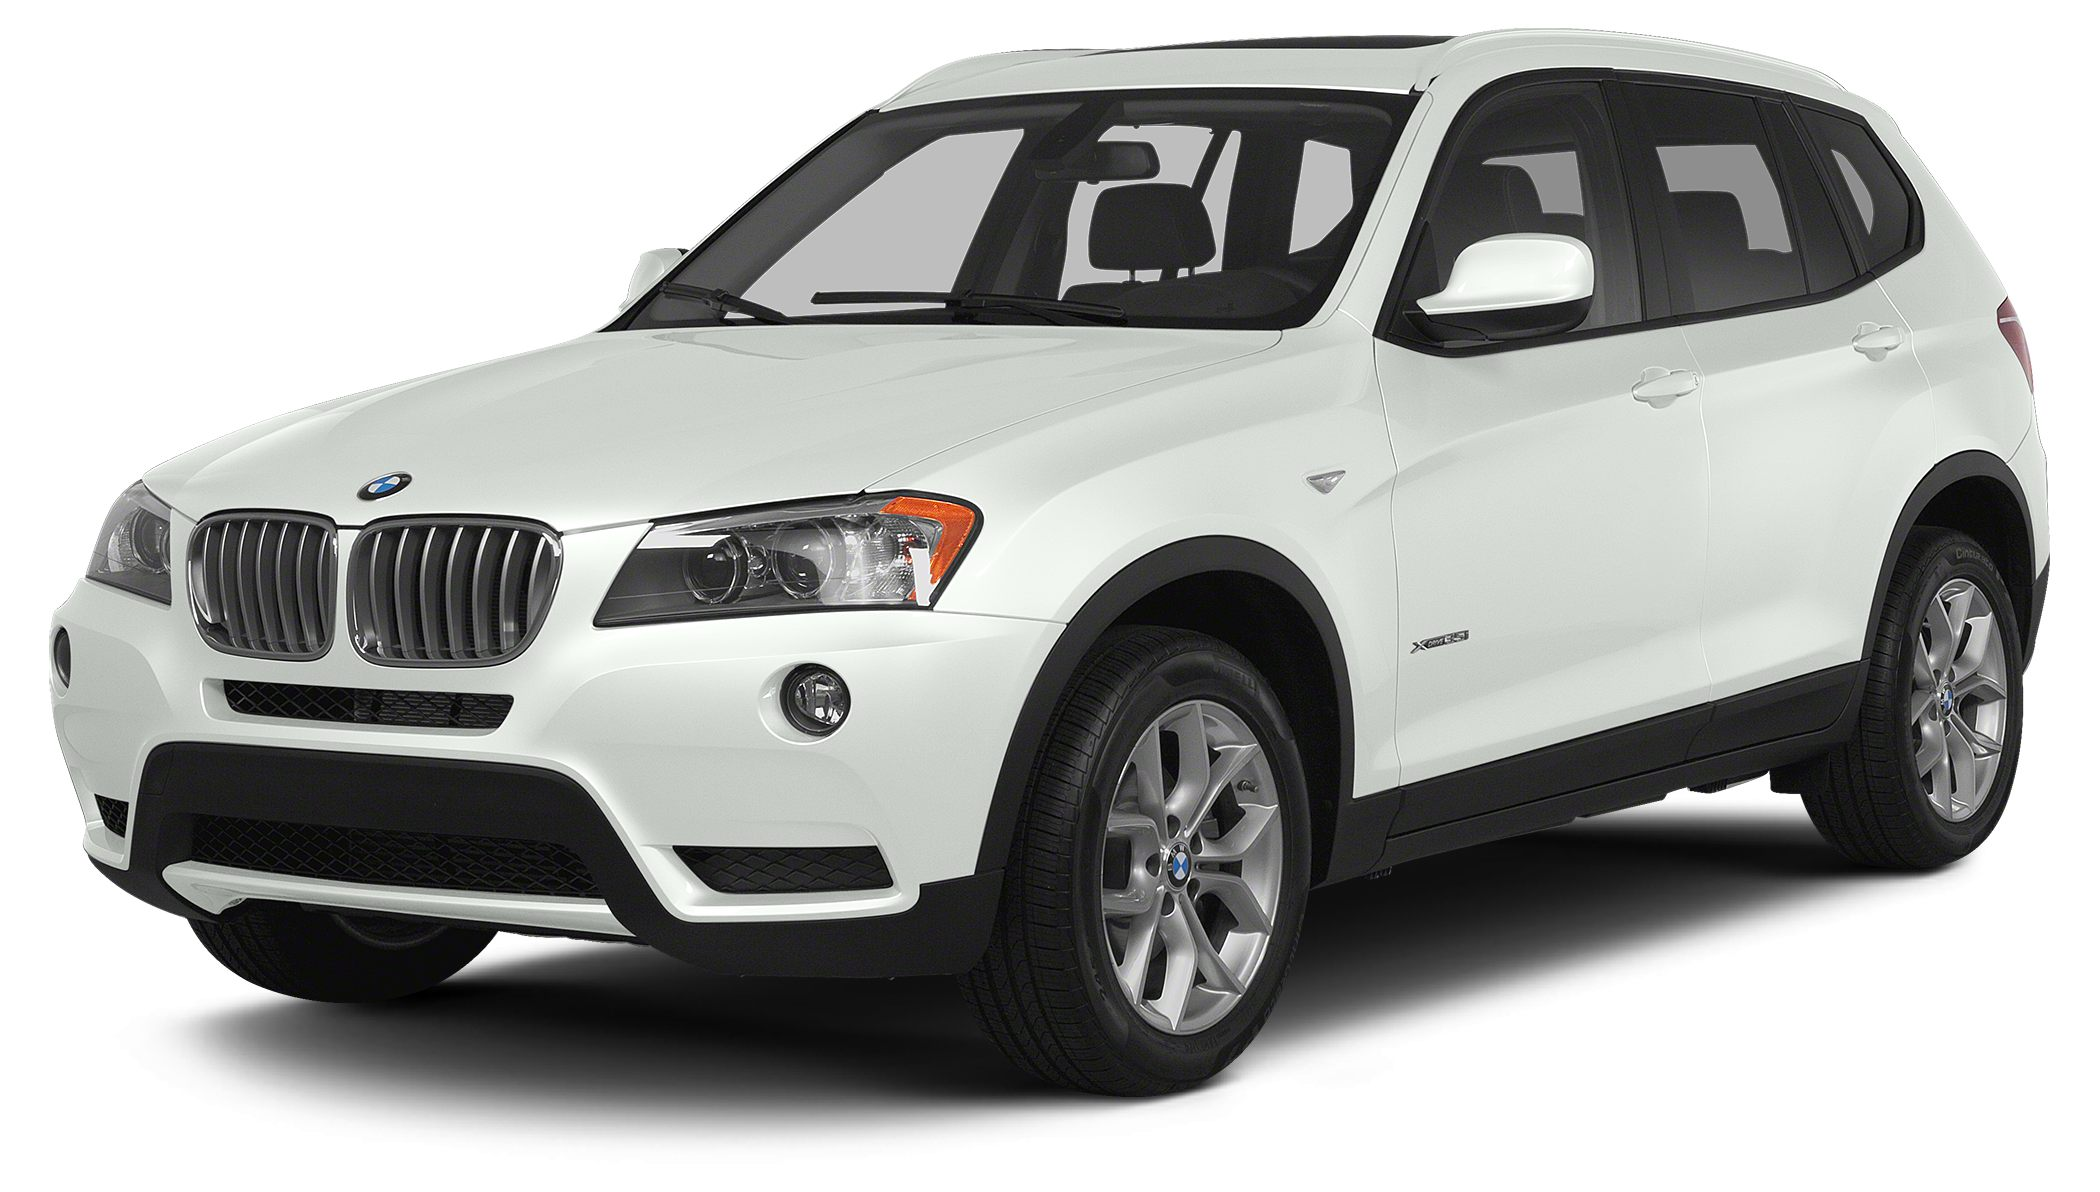 2014 BMW X3 xDrive35i Snatch a score on this 2014 BMW X3 xDrive35i before its too late Spacious